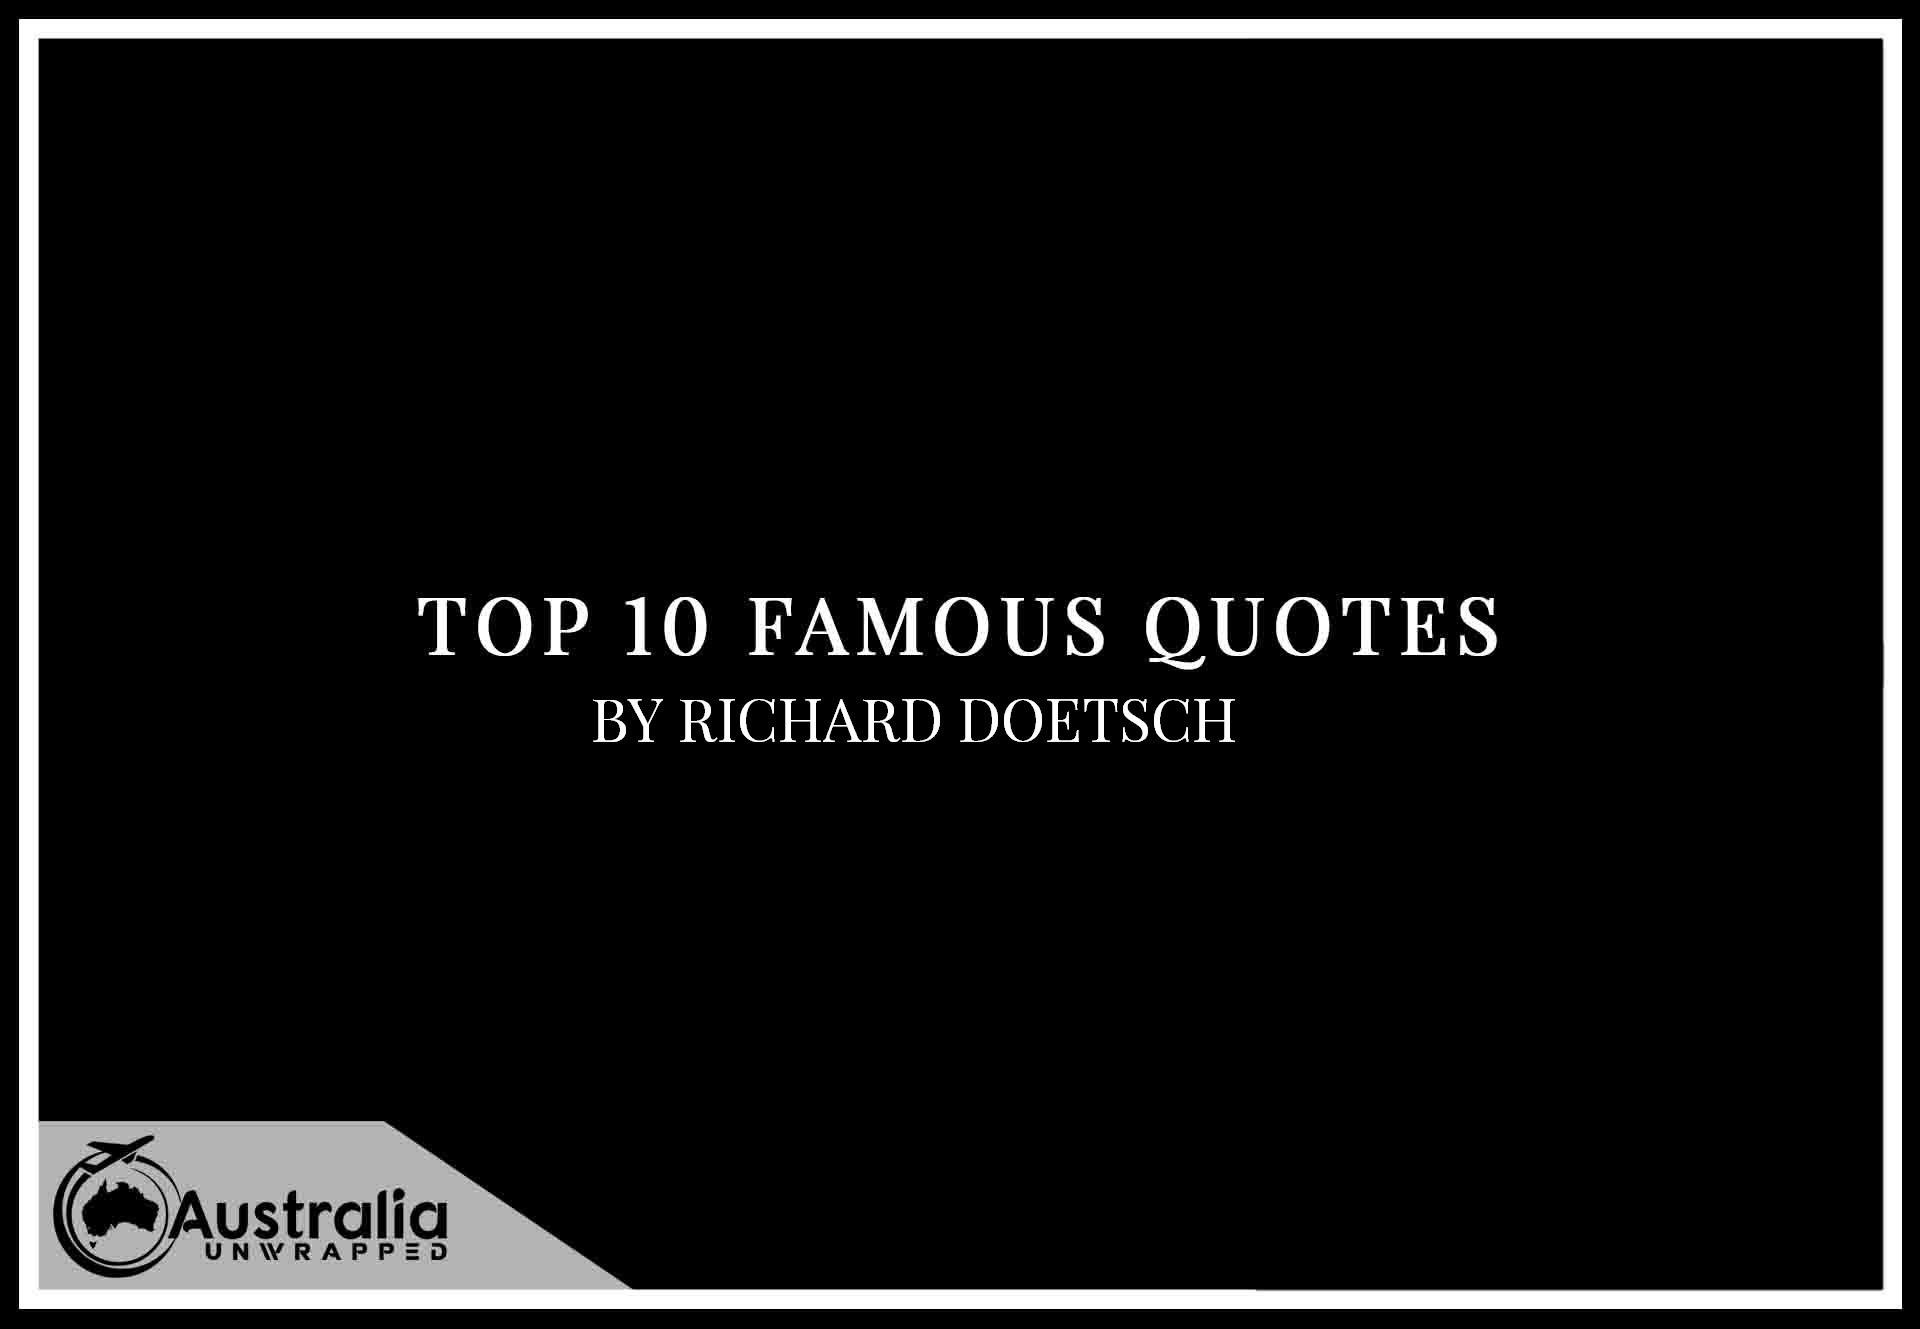 Top 10 Famous Quotes by Author Richard Doetsch